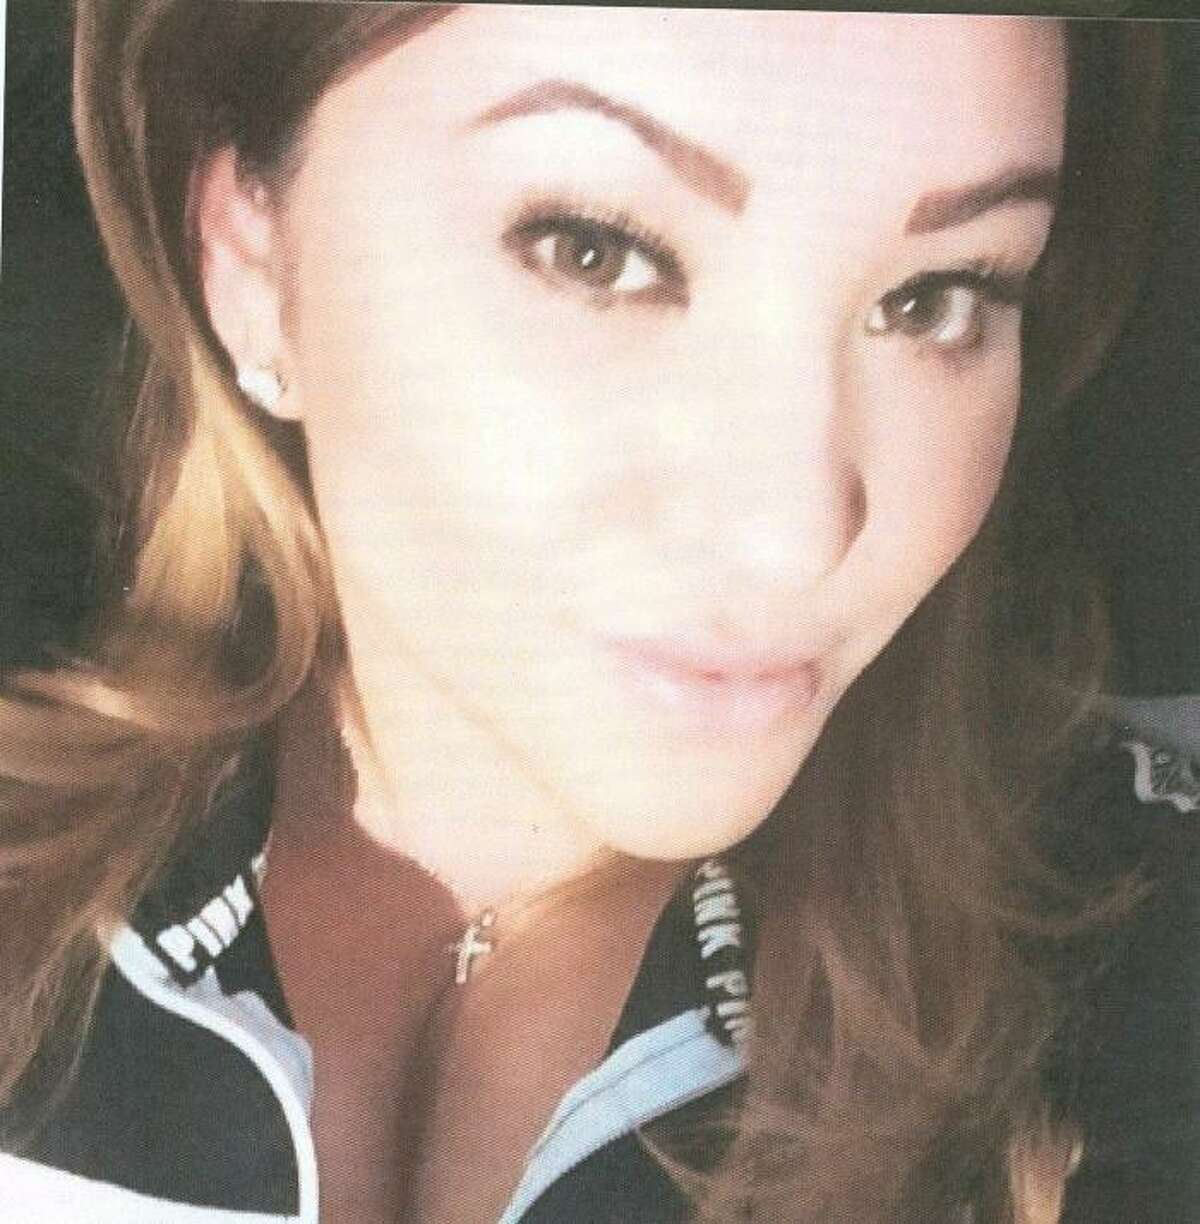 Crystal Ana Lopez, 34, has been missing since April 26, 2017.